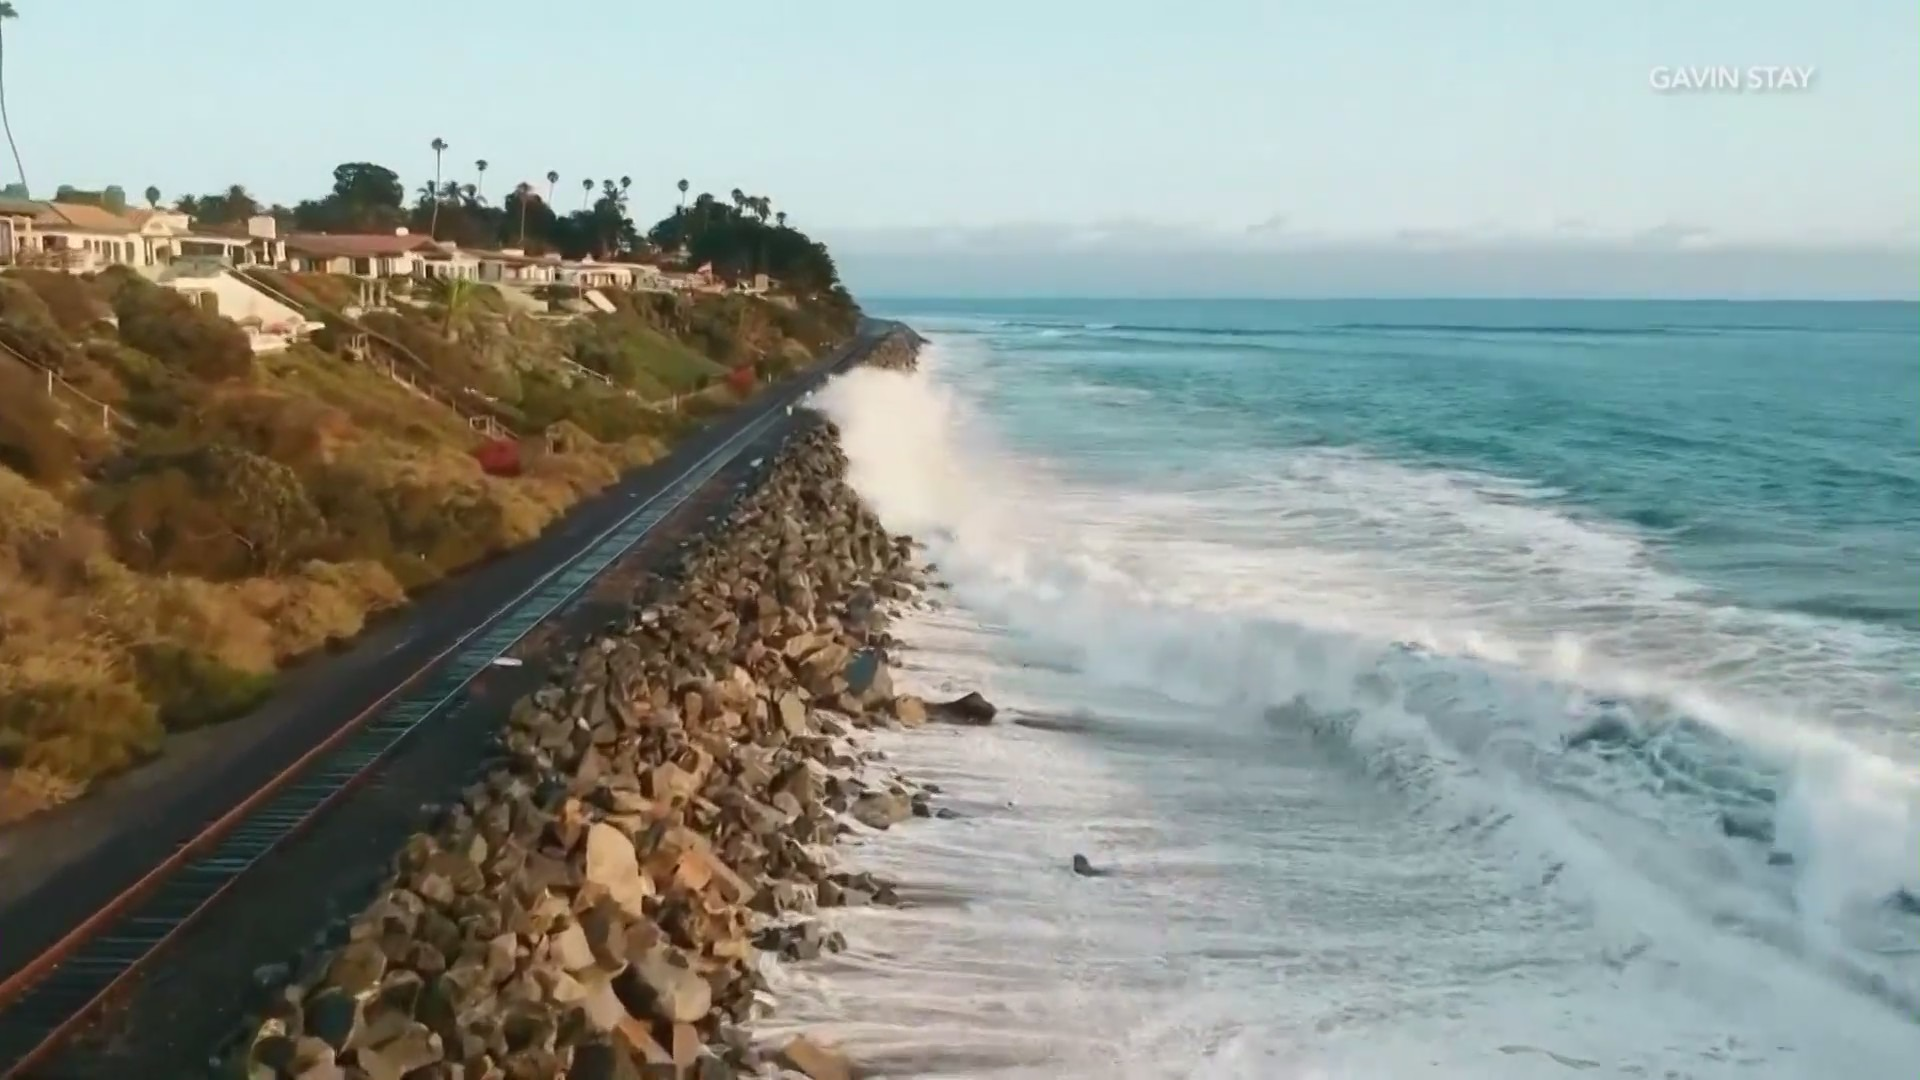 This Aug. 19. 2021, image shows large swell and high tide hitting against train tracks in San Clemente. (Gavin Stay)